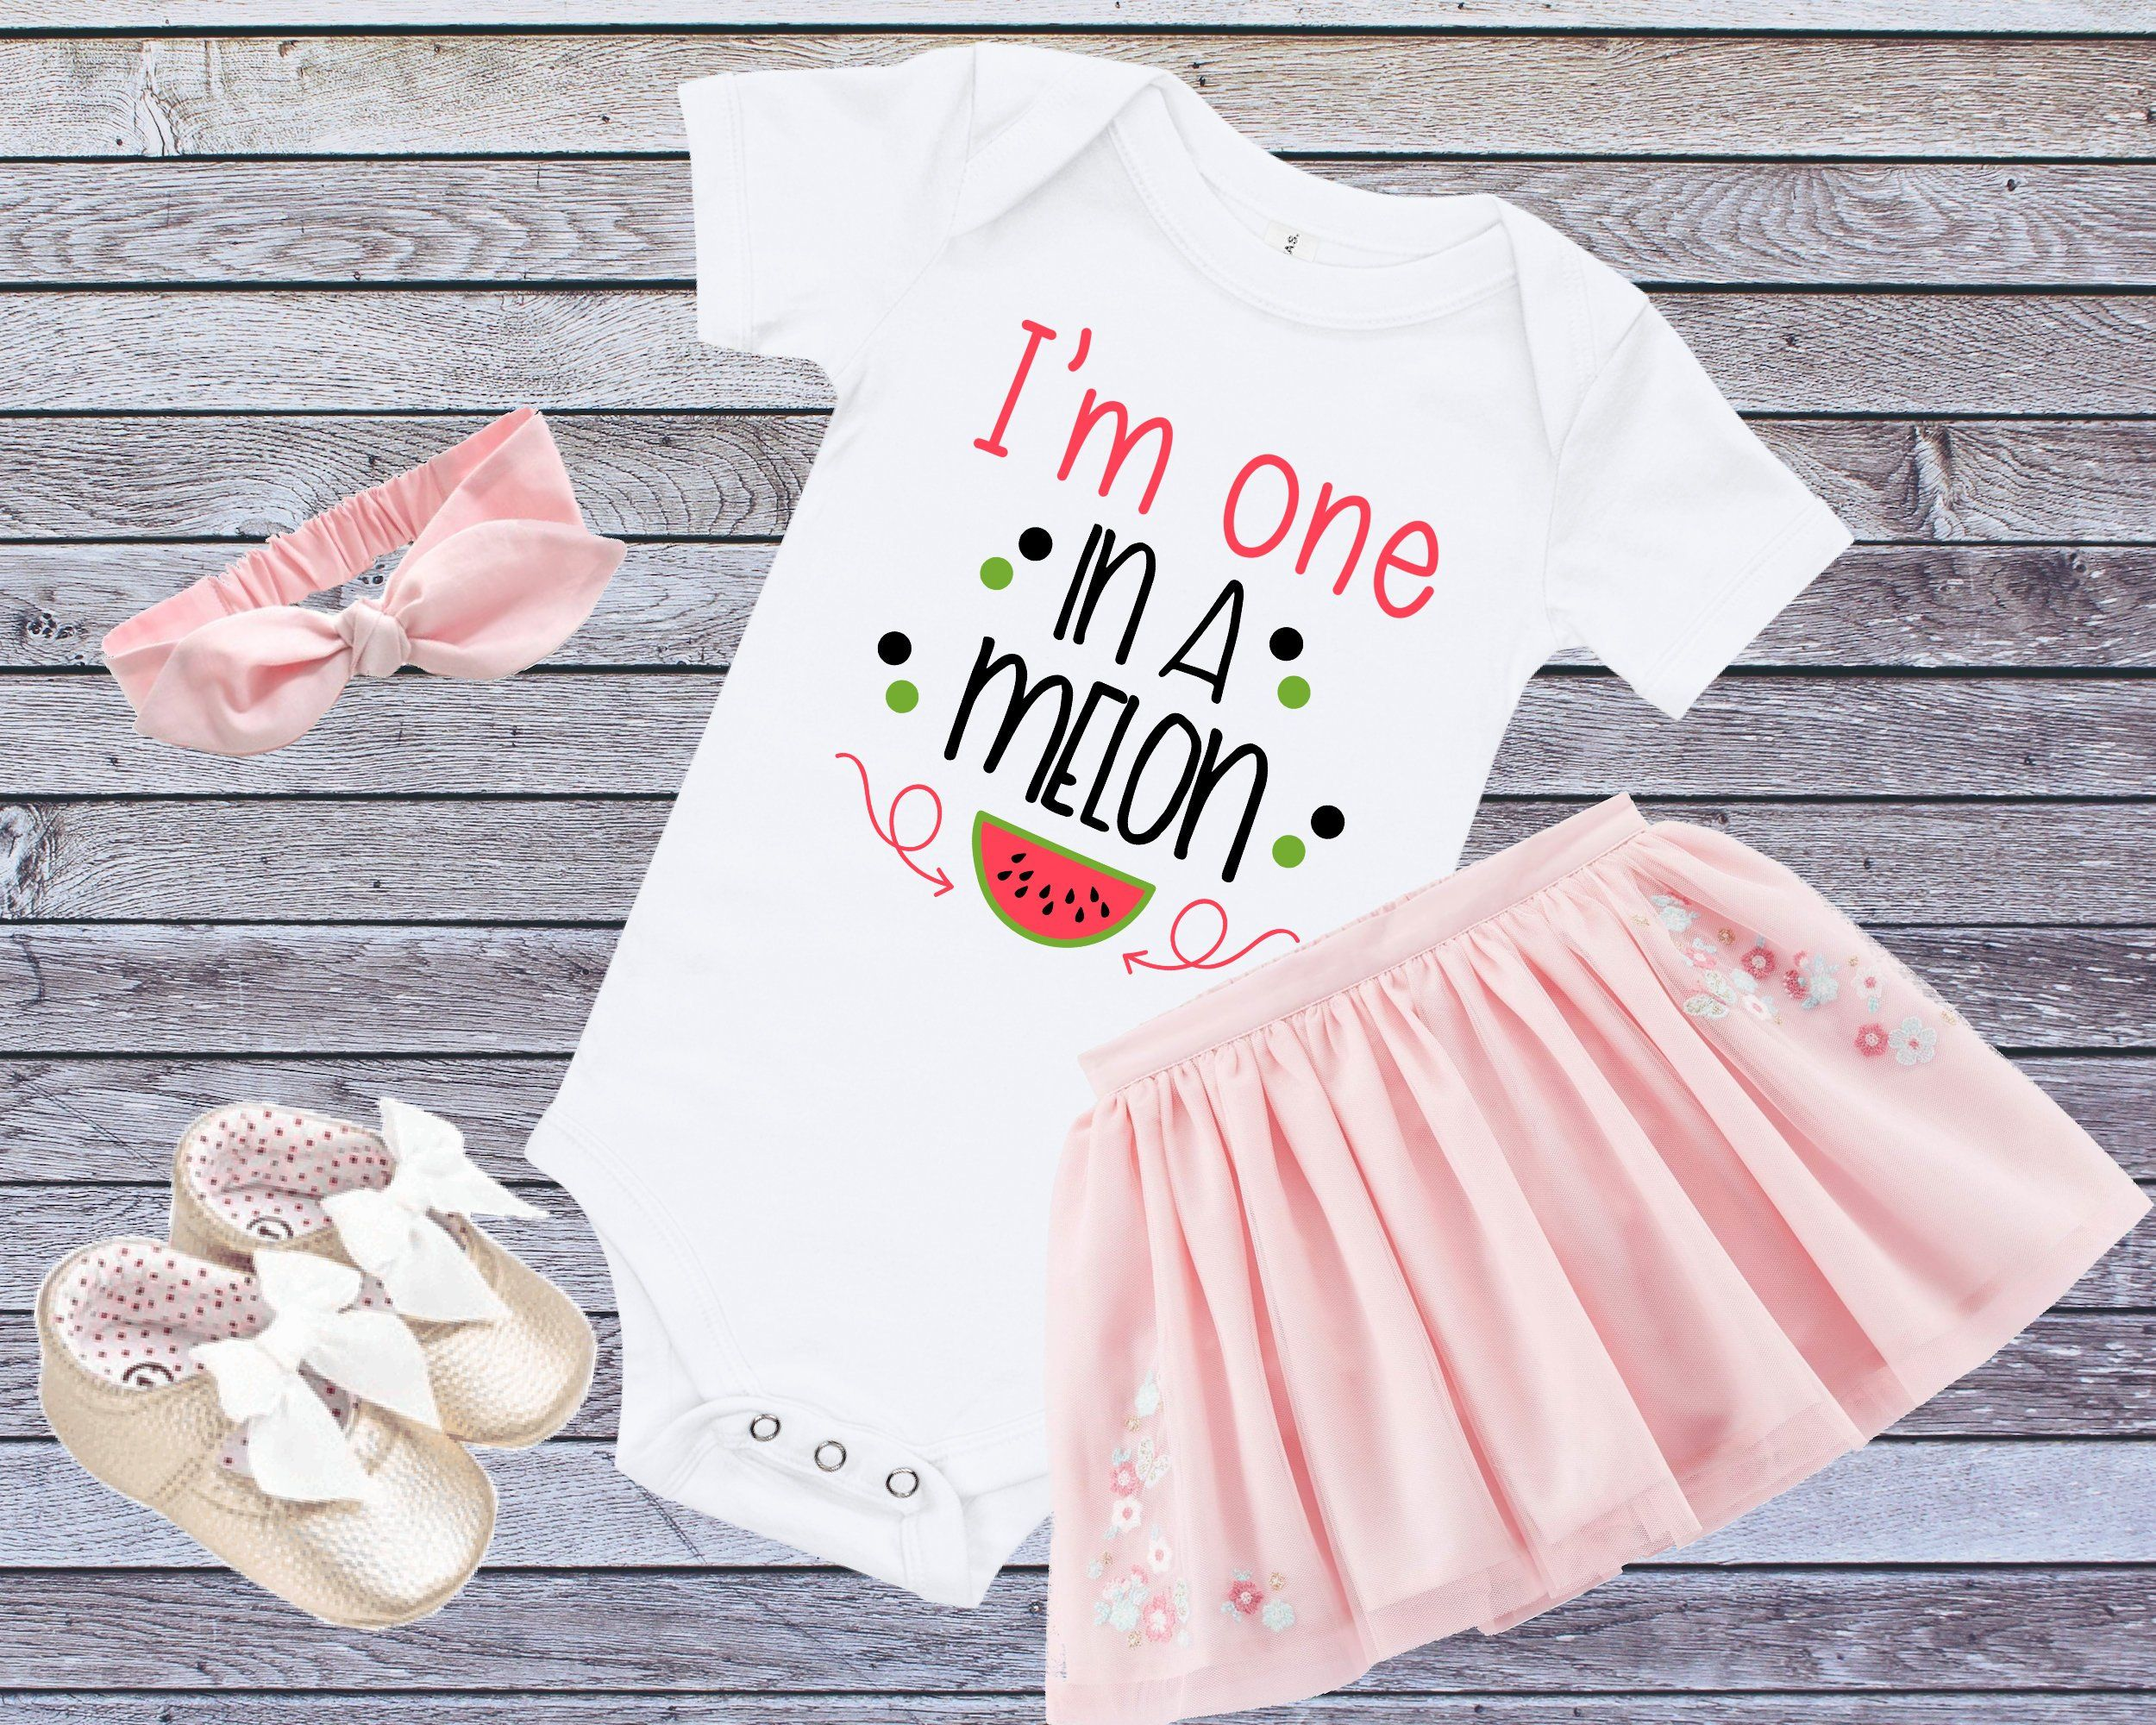 51a62fc4b Melon 1st Birthday, Girls 1st Birthday Shirt, First Birthday Shirt, Girl  One Outfit, One In A Melon Party, Melon Birthday, One Year Old Gift